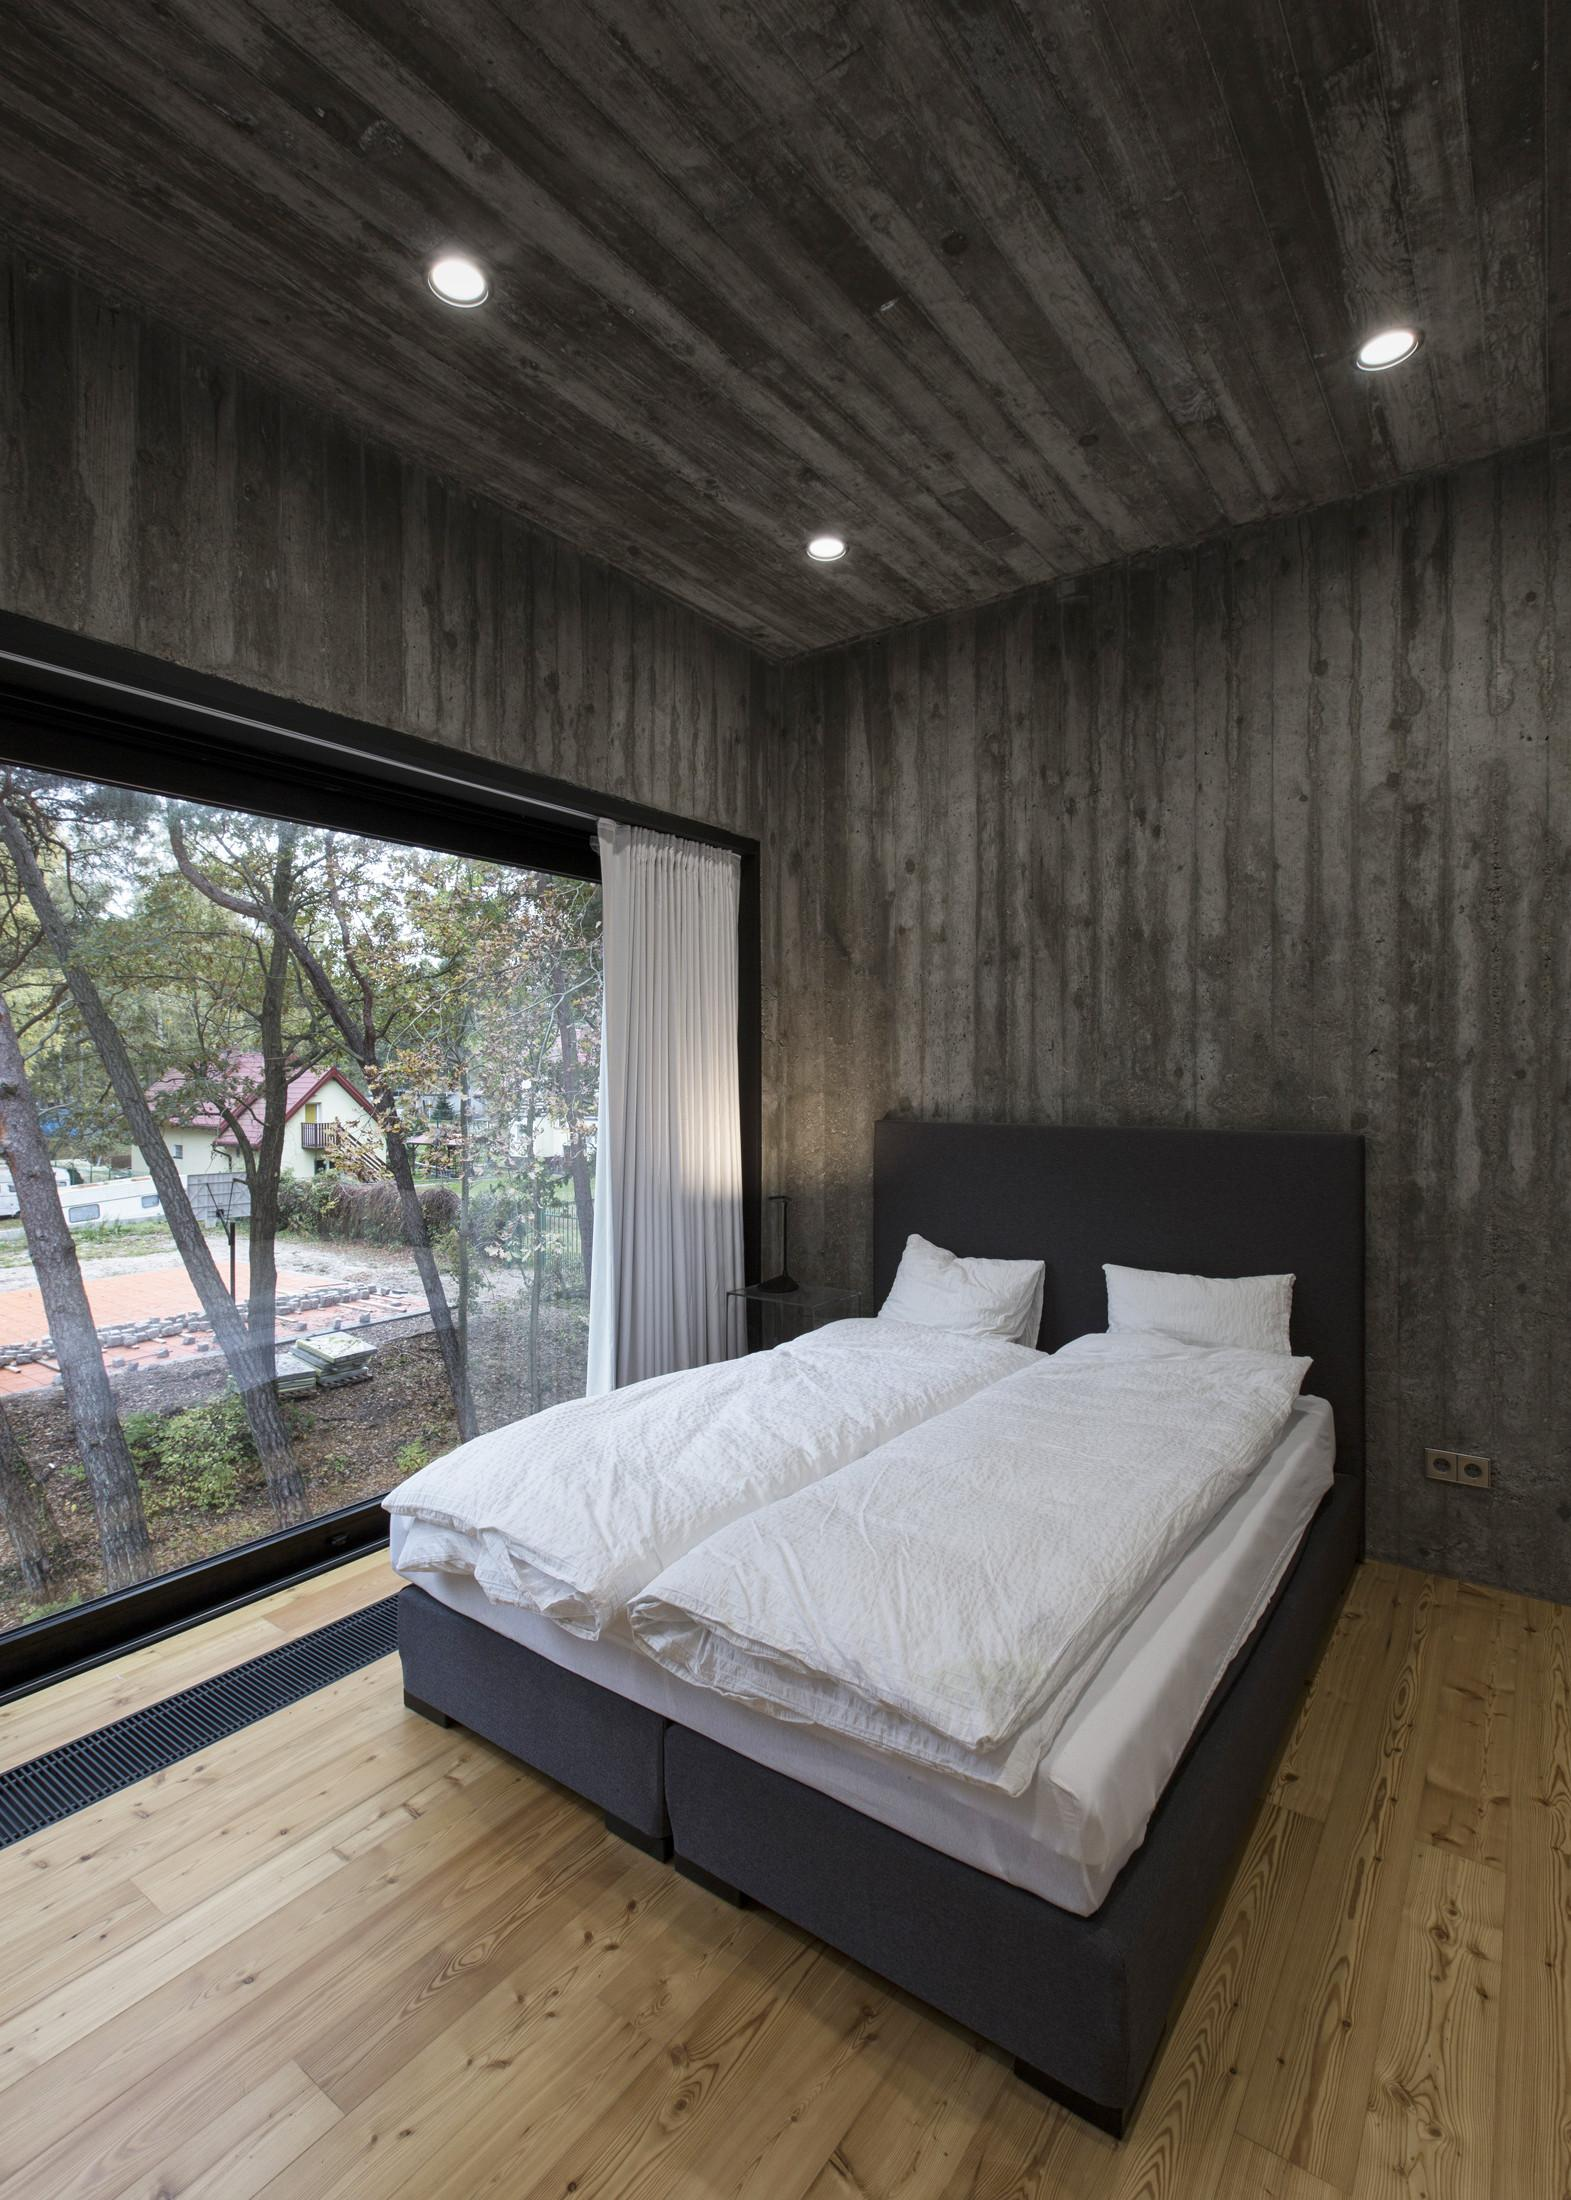 Comely Rustic Wood Plank Walls Floor Best Wall